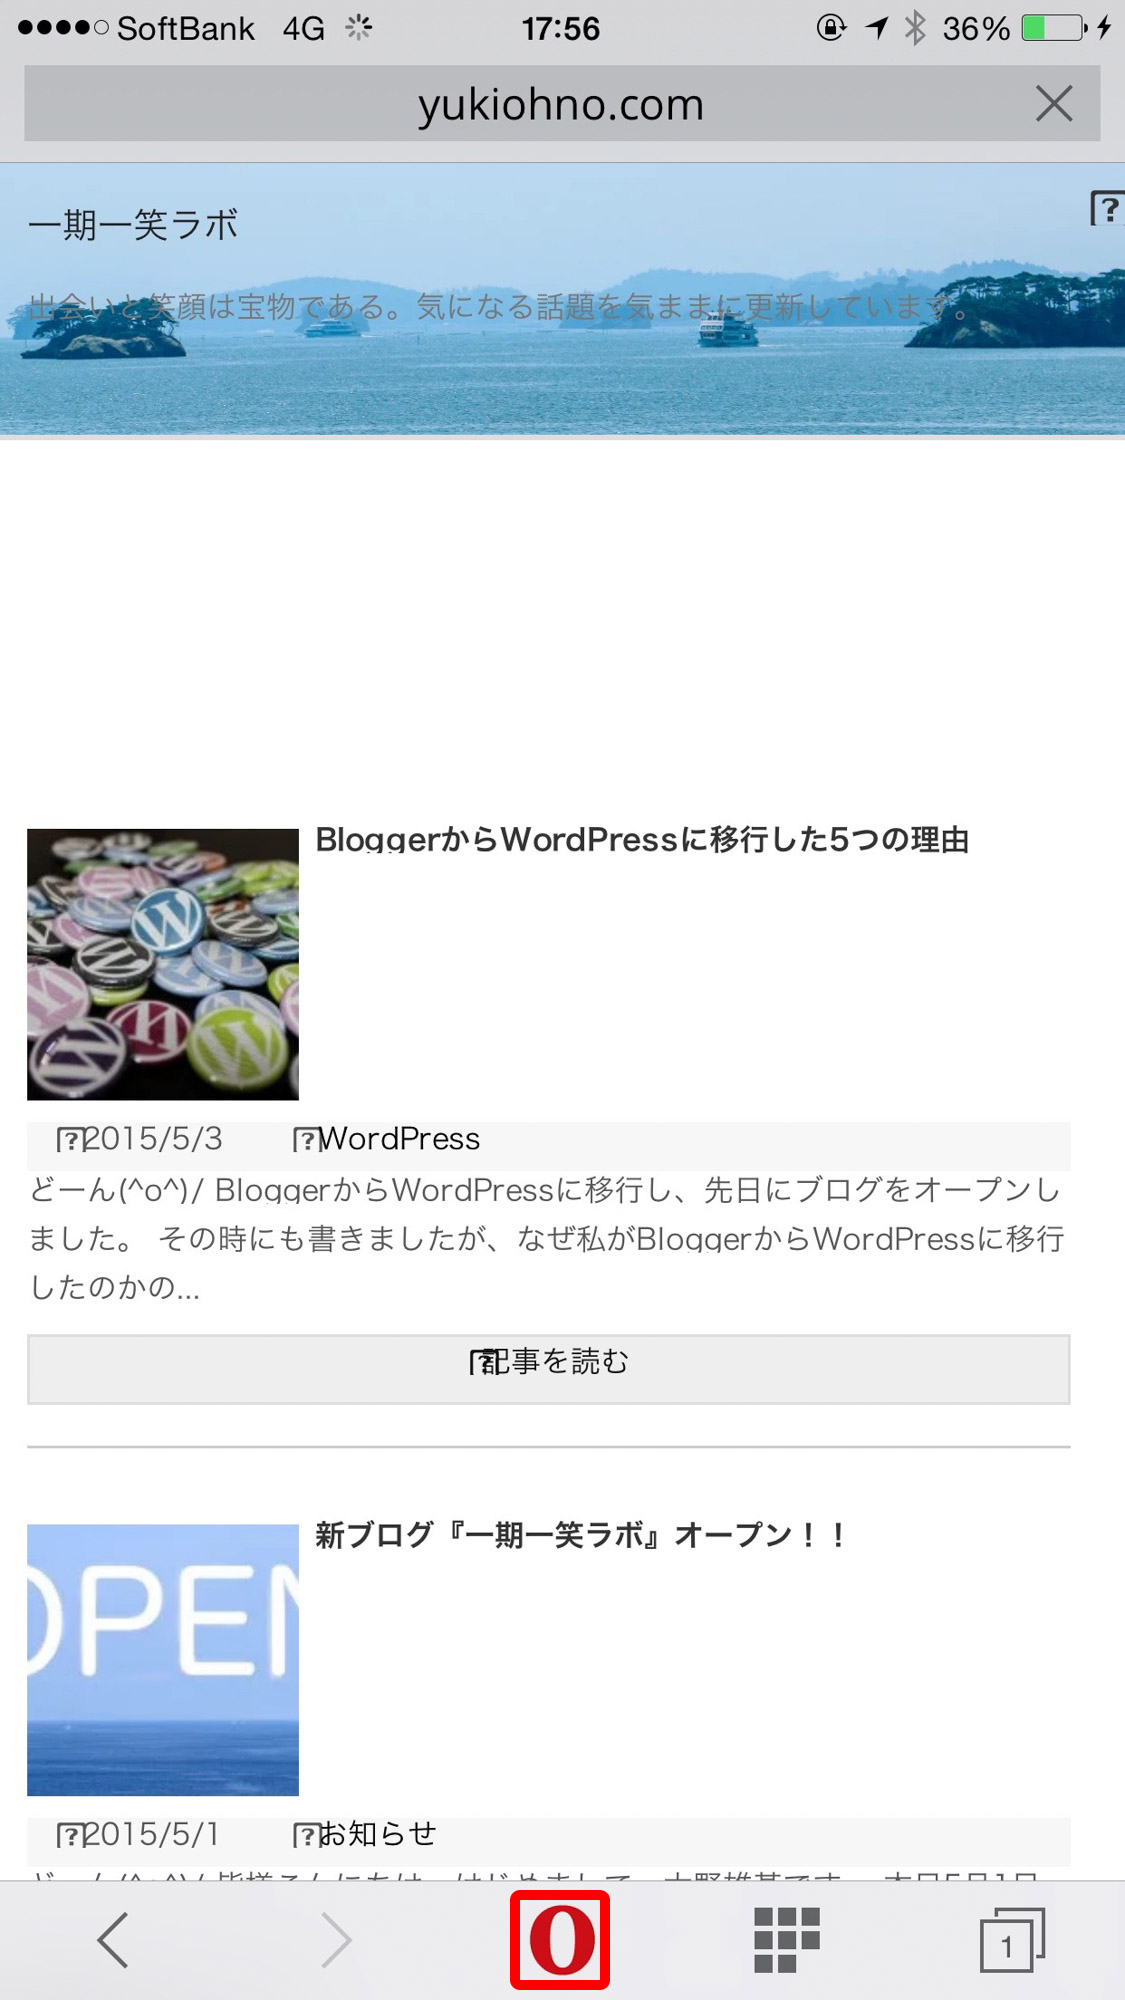 browser-wp-4252